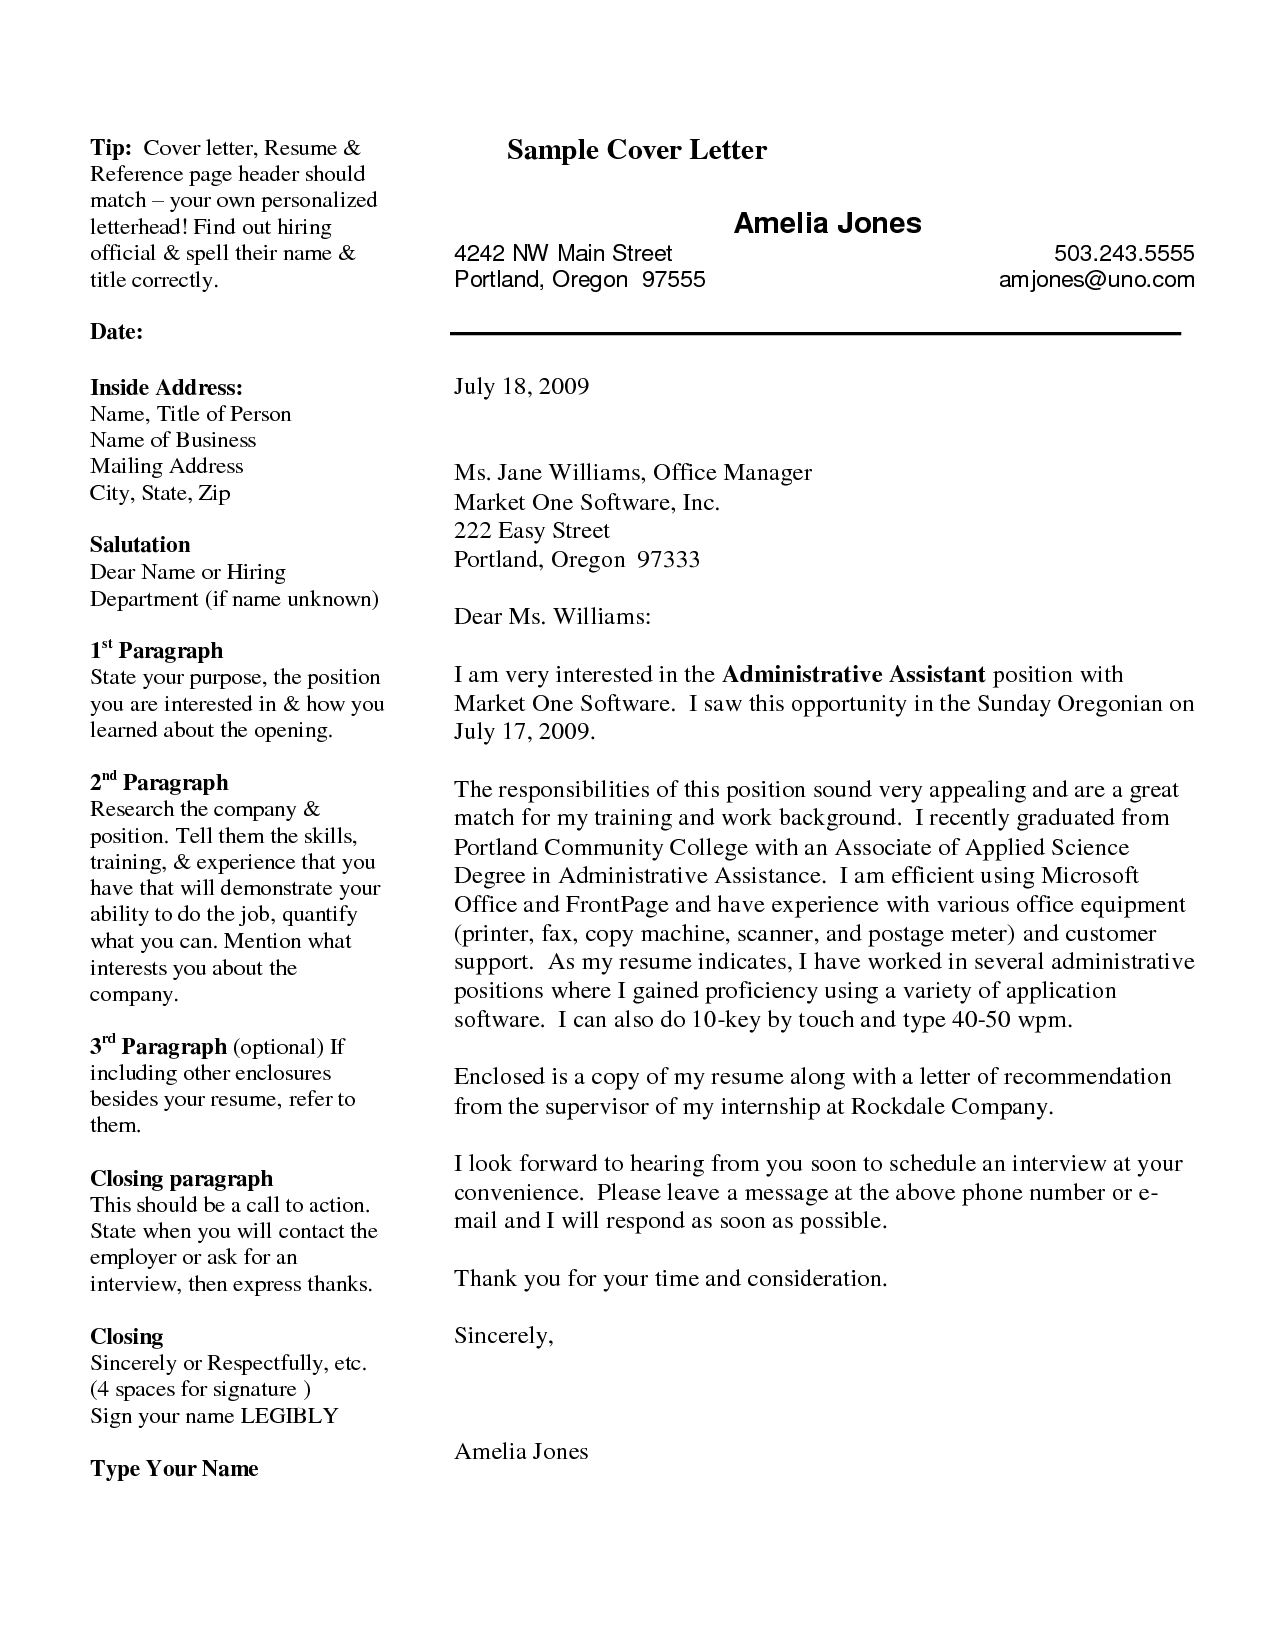 professional resume cover letter samplesprofessional resume cover letter samples professional resume cover letter sampleshow. Resume Example. Resume CV Cover Letter